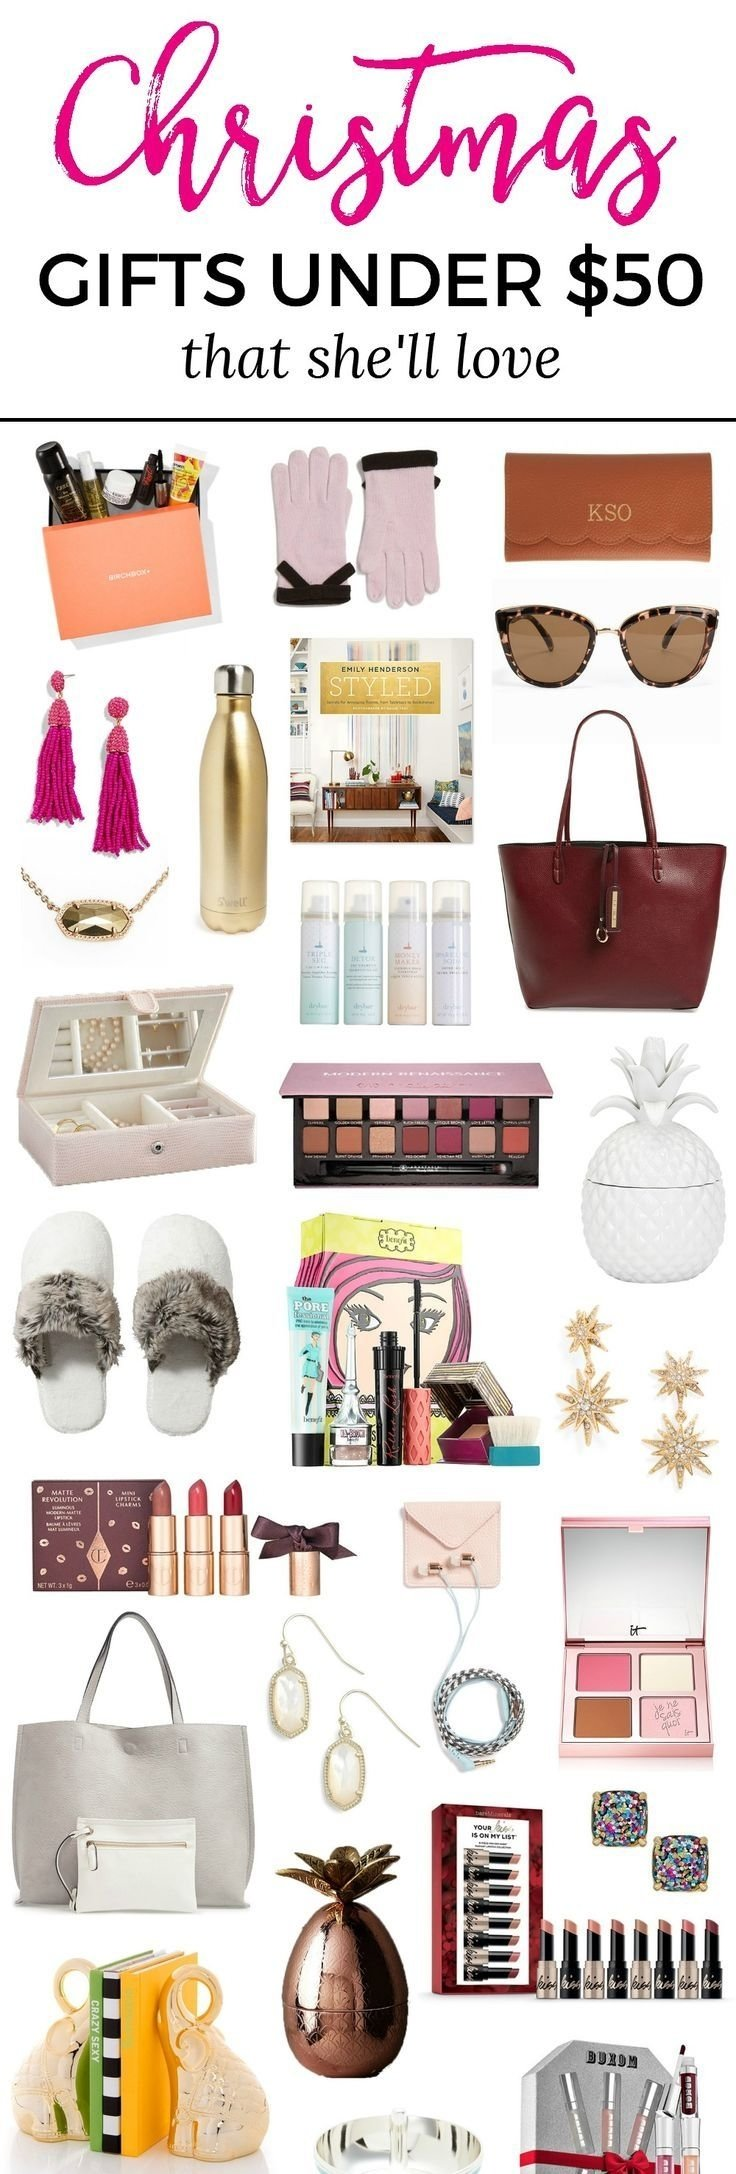 10 Lovely Gift Ideas For Women Birthday the best christmas gift ideas for women under 50 ashley brooke 2 2020